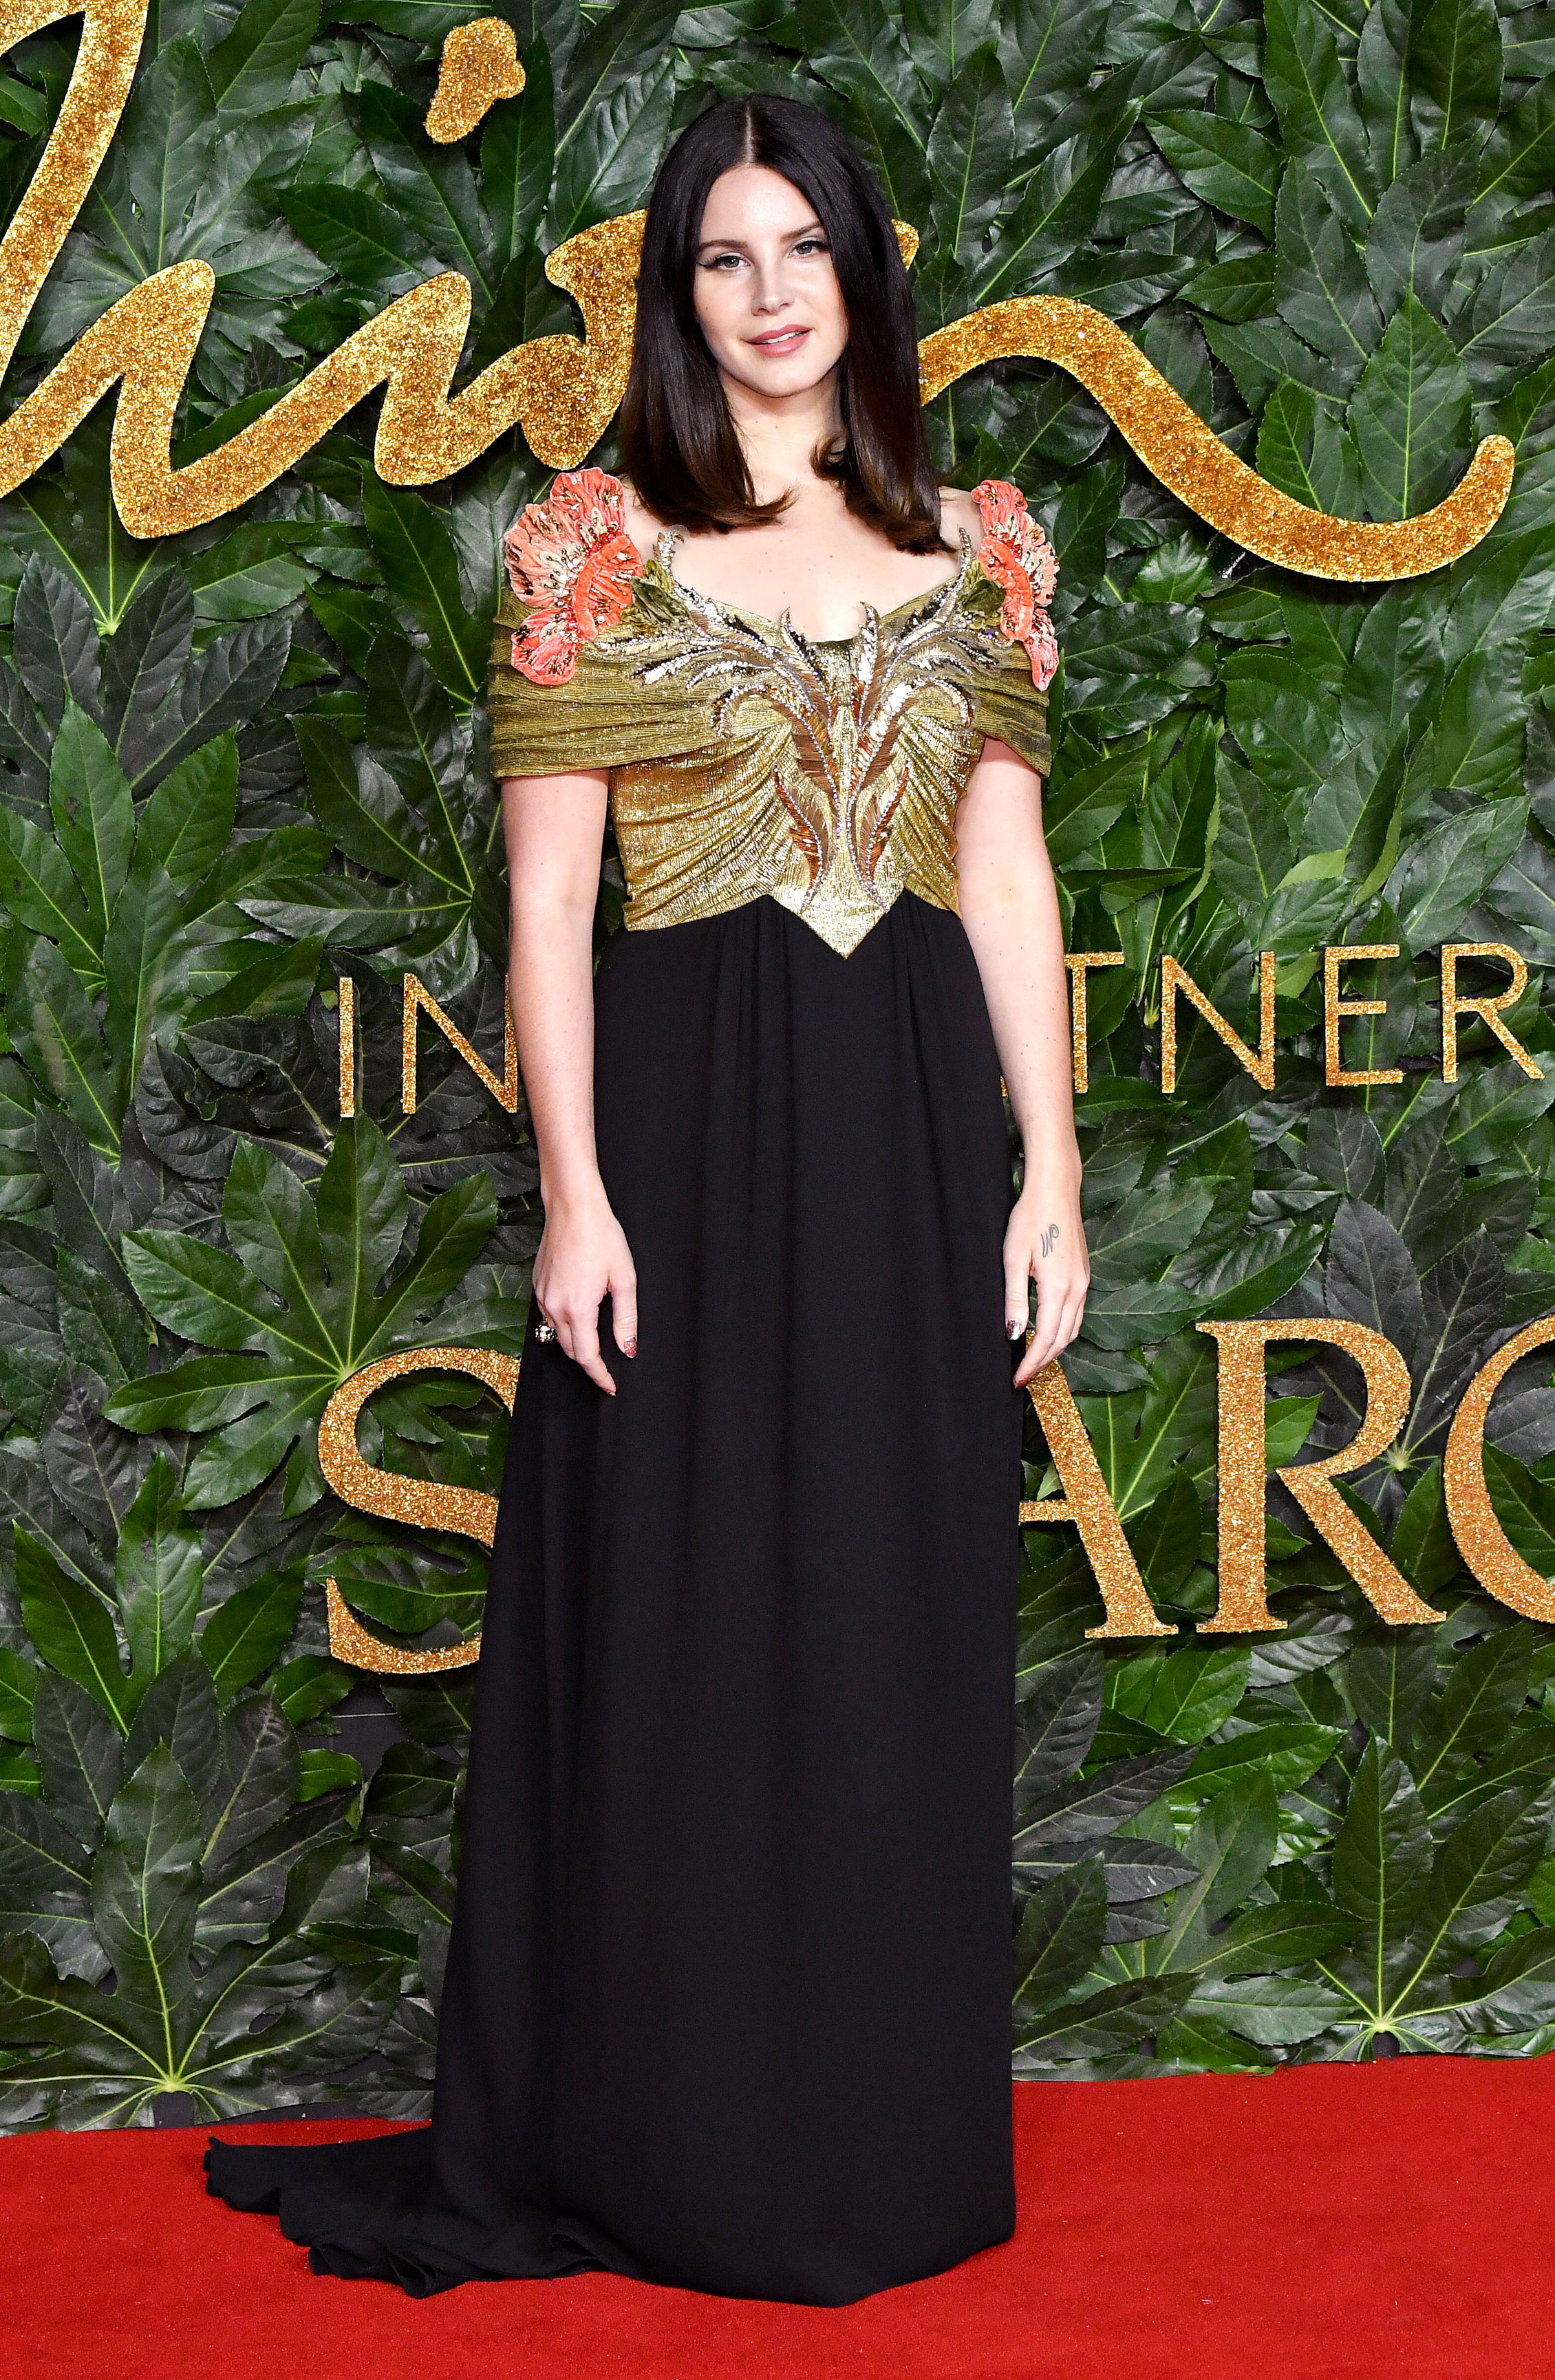 lana-del-rey - The Gucci ambassador sported a black and gold off-the-shoulder frock by the fashion house.